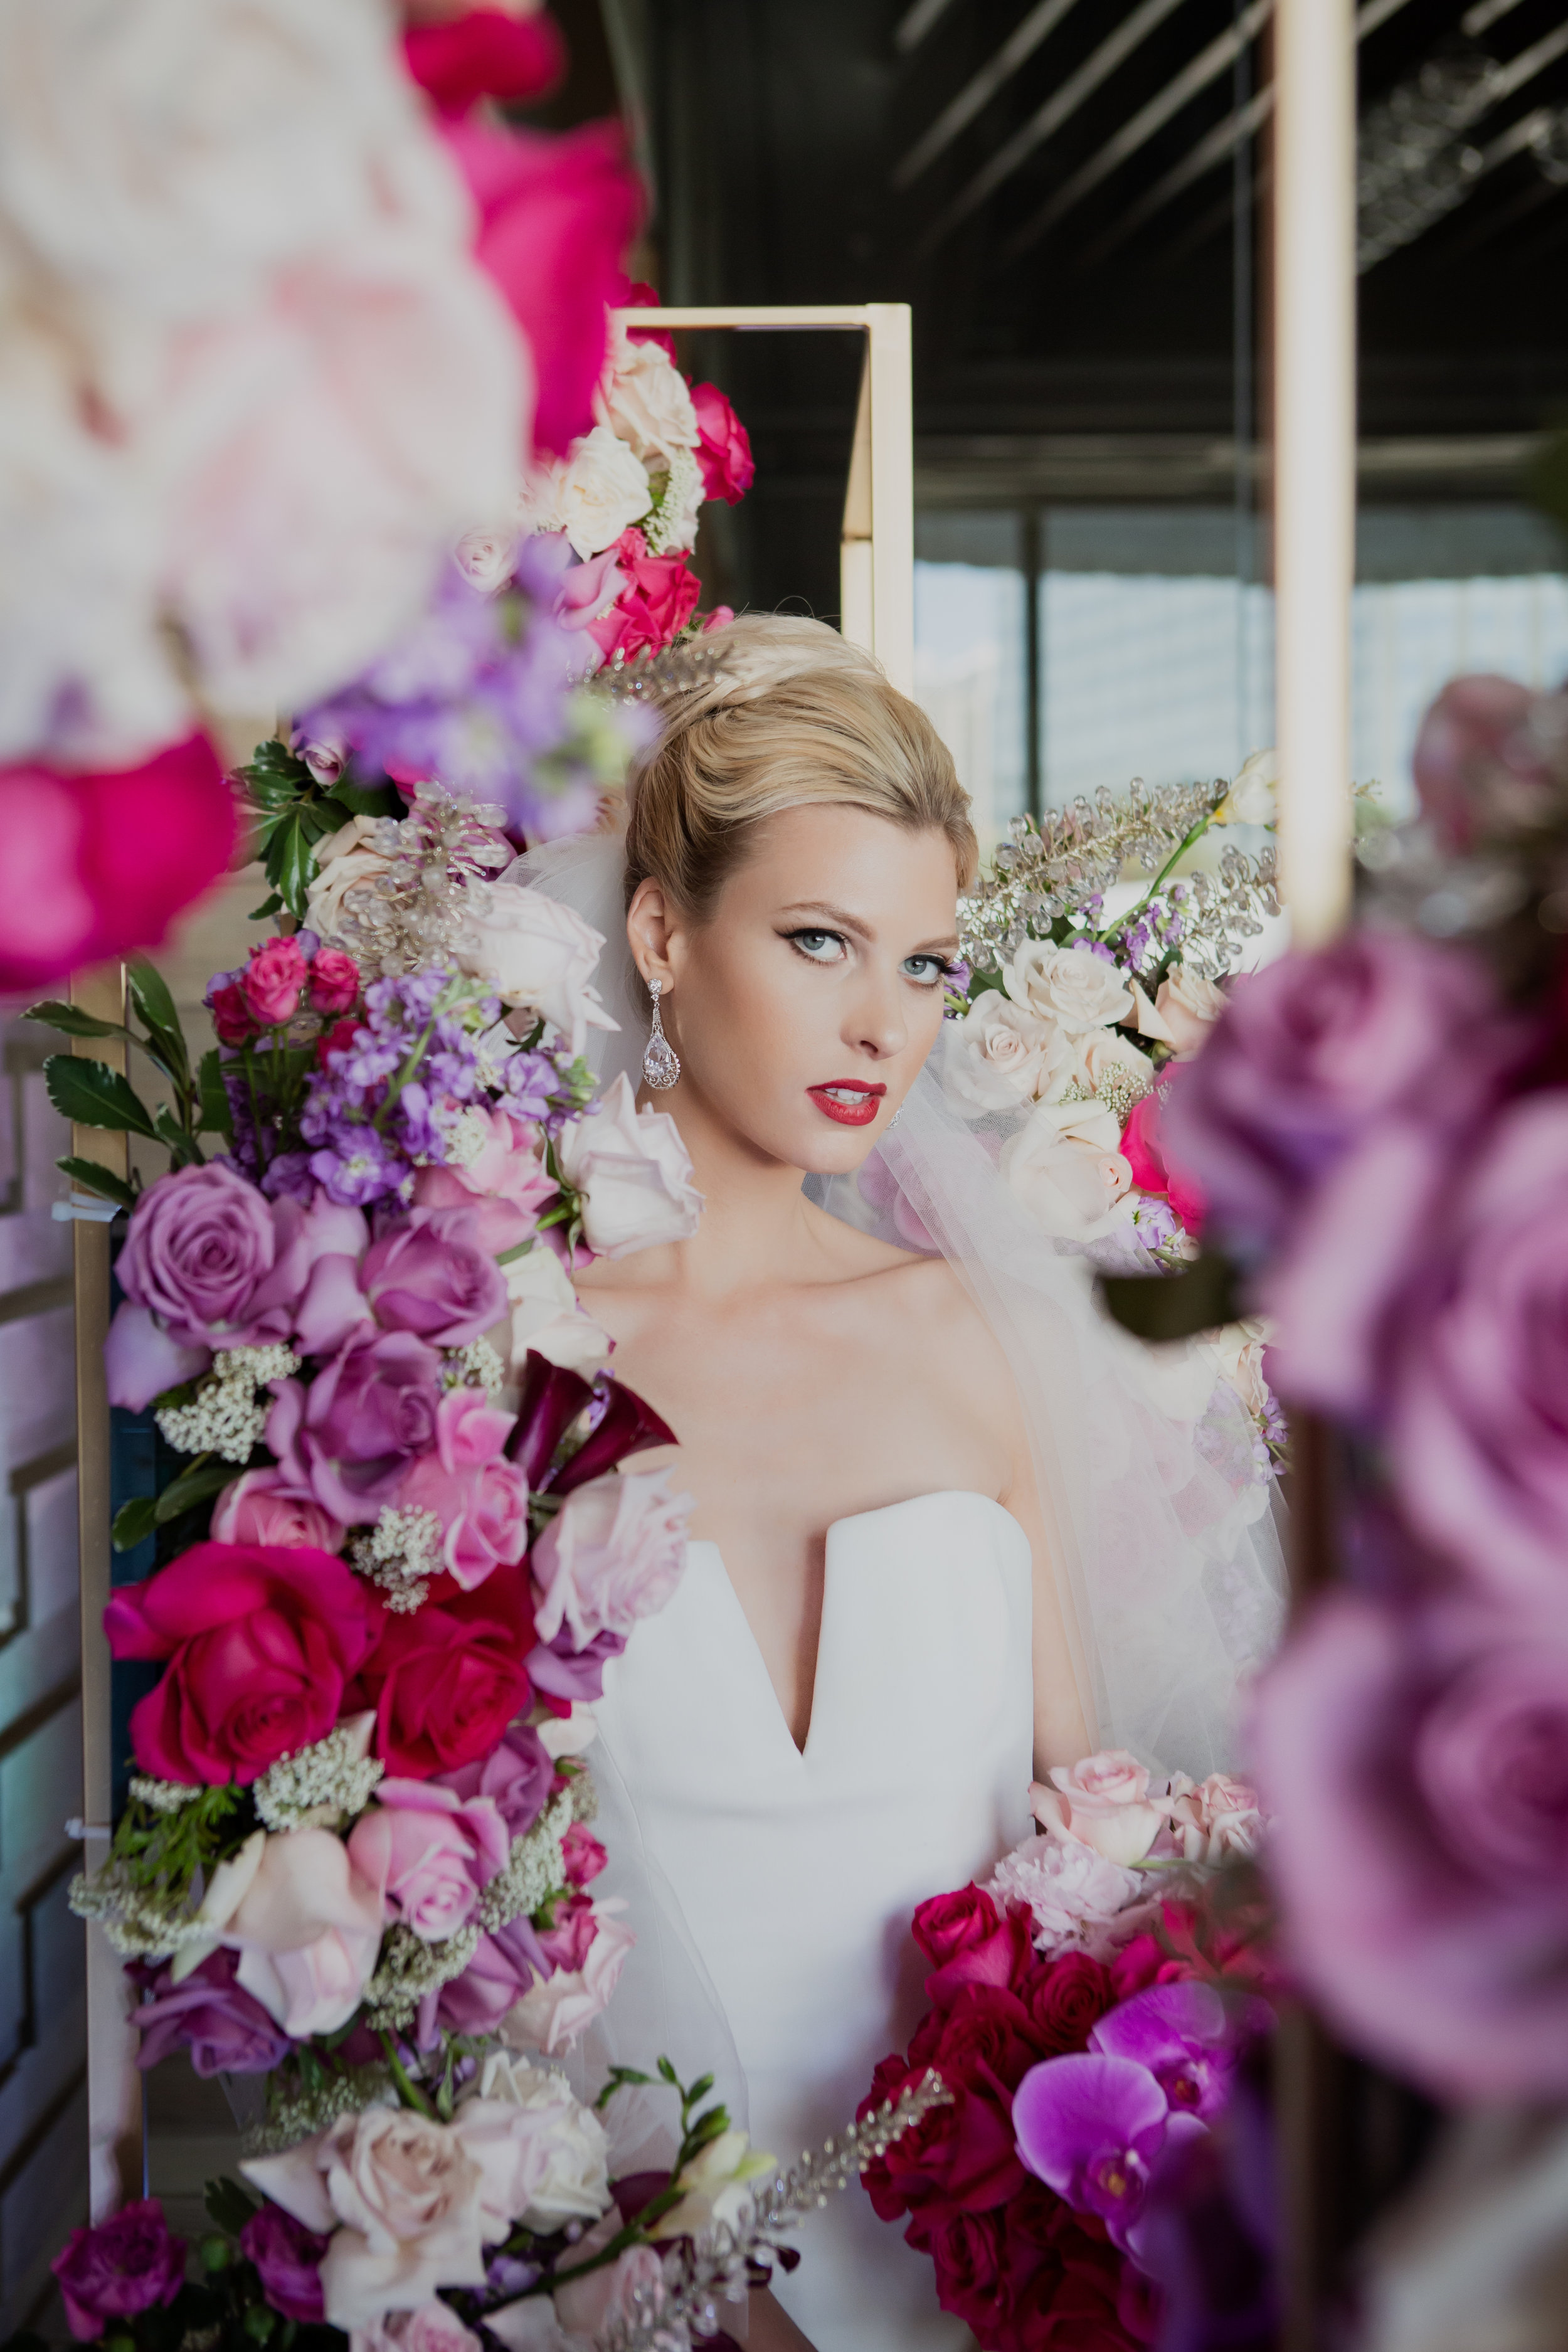 Bridal portrait at ARIA. Pink, fuchsia, and white wedding ceremony.  Las Vegas Wedding Planner & Event Designer  Andrea Eppolito Events  · Photography by  Adam Frazier Photo  · Video by  M Place Productions  · Floral & Decor by  DBD Las Vegas  · Venue  ARIA Primrose Ballroom  · Cigar Band by  Royal Cigar Company  and  Jason of Beverly Hills  · Beauty by  Glammed Up Las Vegas  · Dress by  Vera Wang  · Salon  Couture Bride Las Vegas  · Shoes  Bella Belle Shoes  · Bride  Katrina May Armenta  · Groom  Lucas Cuevas